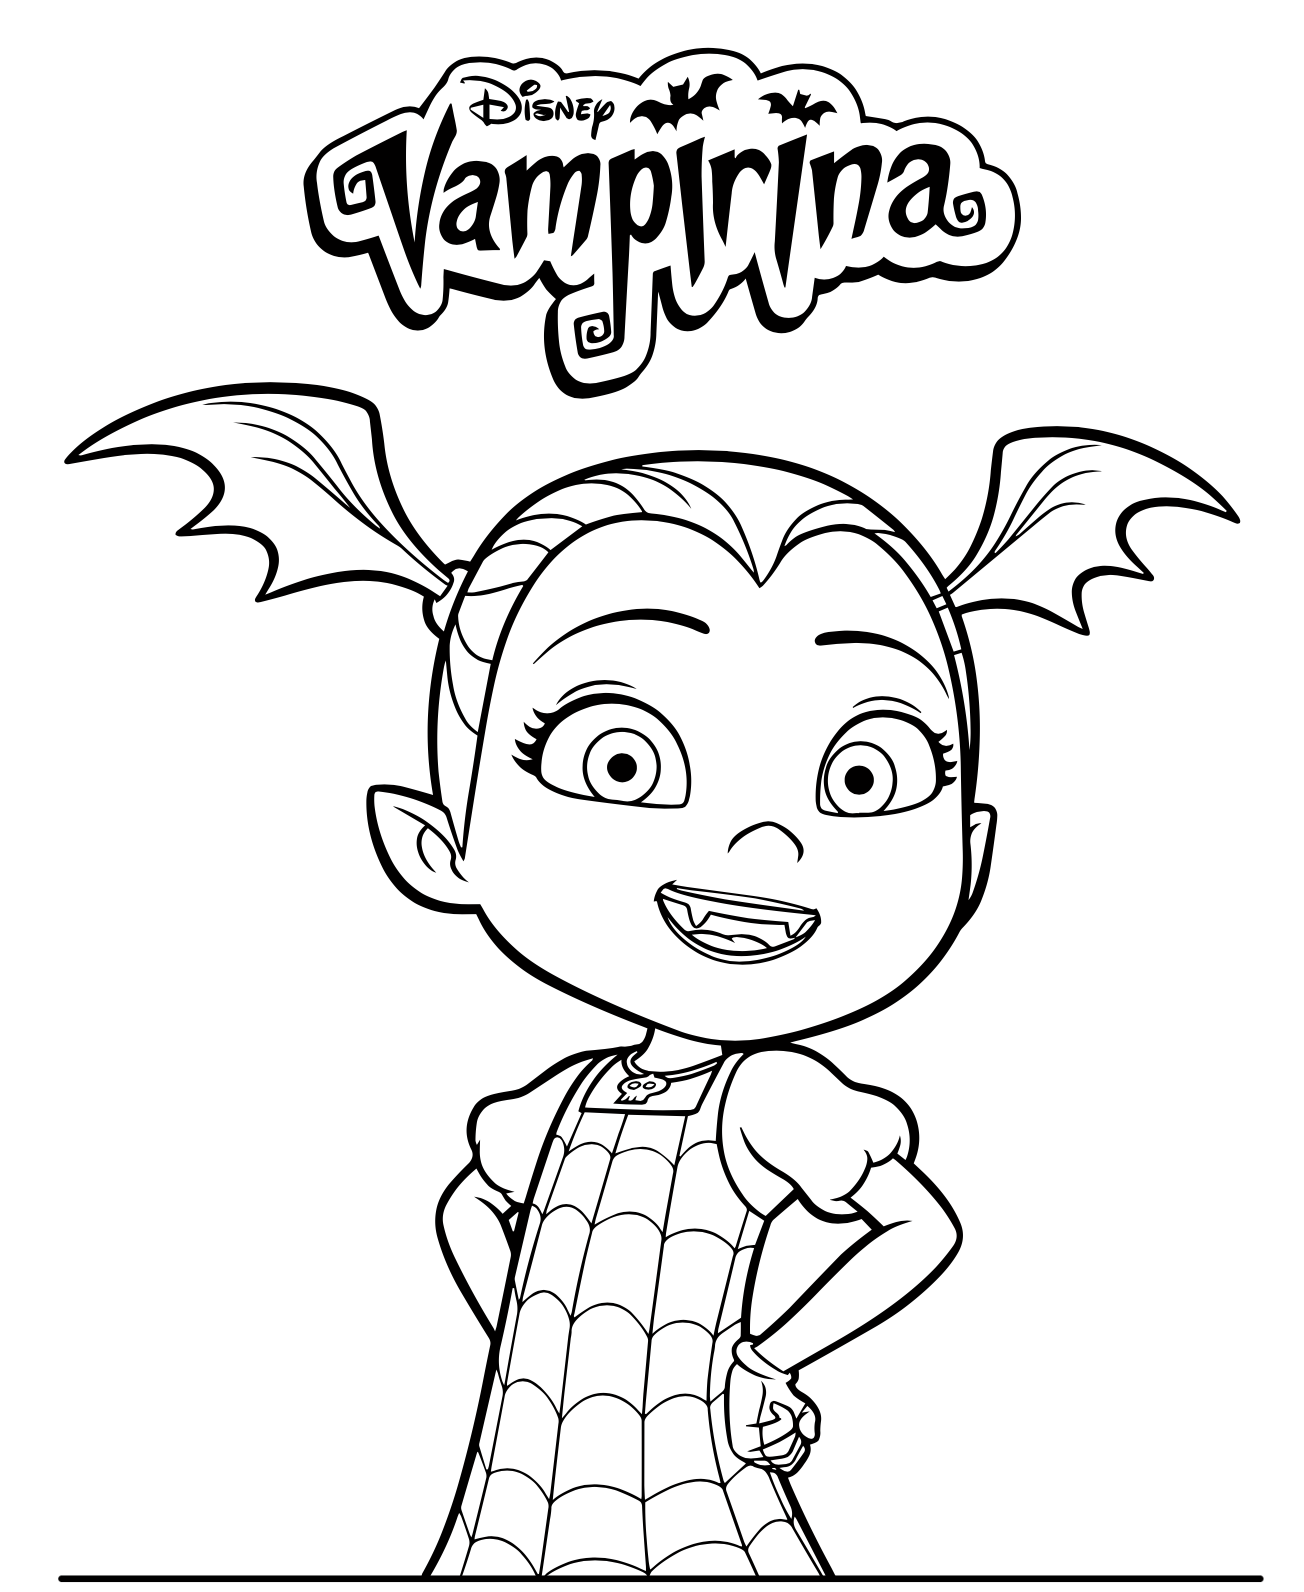 Vampirina Coloring Pages Best Coloring Pages For Kids Disney Coloring Pages Halloween Coloring Pages Halloween Coloring Pages Printable